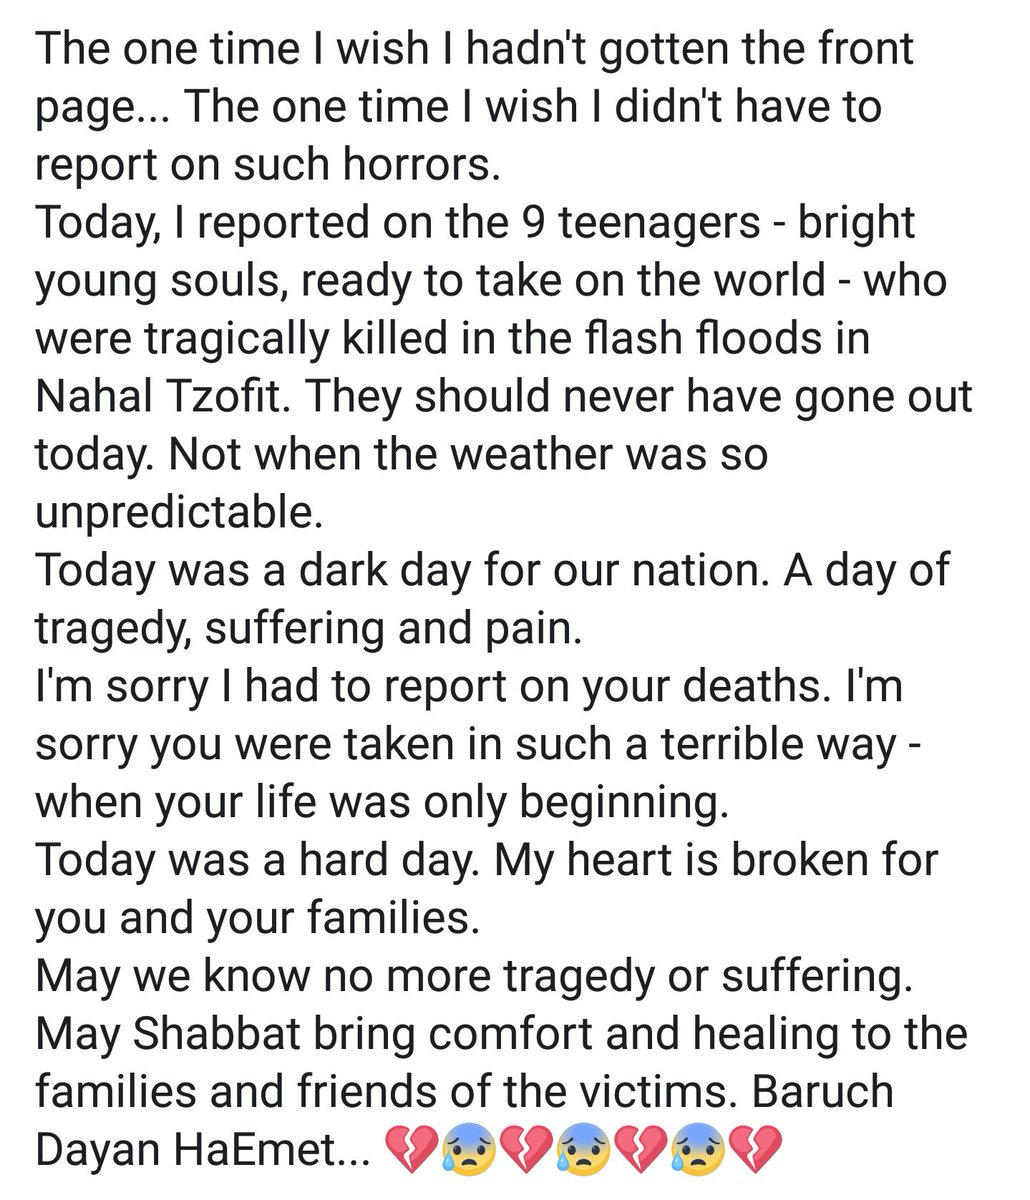 My feelings after reporting about today&#39;s horrors at Nachal Tzafit... Kudos to the heroes of @Mdais, @IDFSpokesperson, @IL_police and @ZAKA_Israel for dealing with this tragedy in such an incredible way!  #Israelstorm #Israel #Flashflood #Zaka<br>http://pic.twitter.com/lfVFGIQWXn